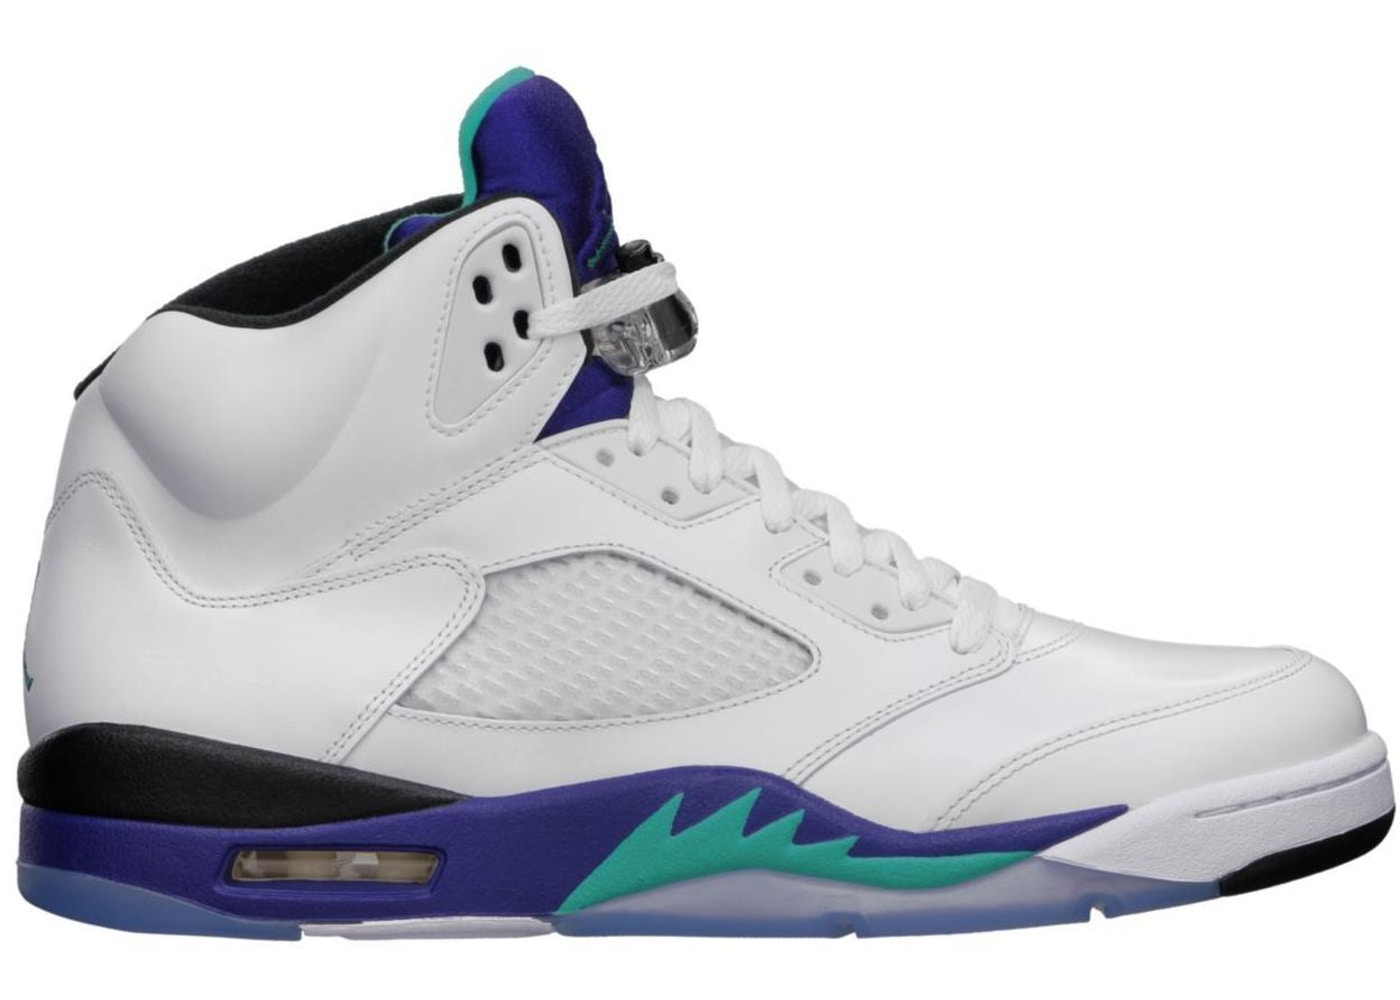 the best attitude 9f863 a9e97 Jordan 5 Retro Grape (2013) - 136027-108